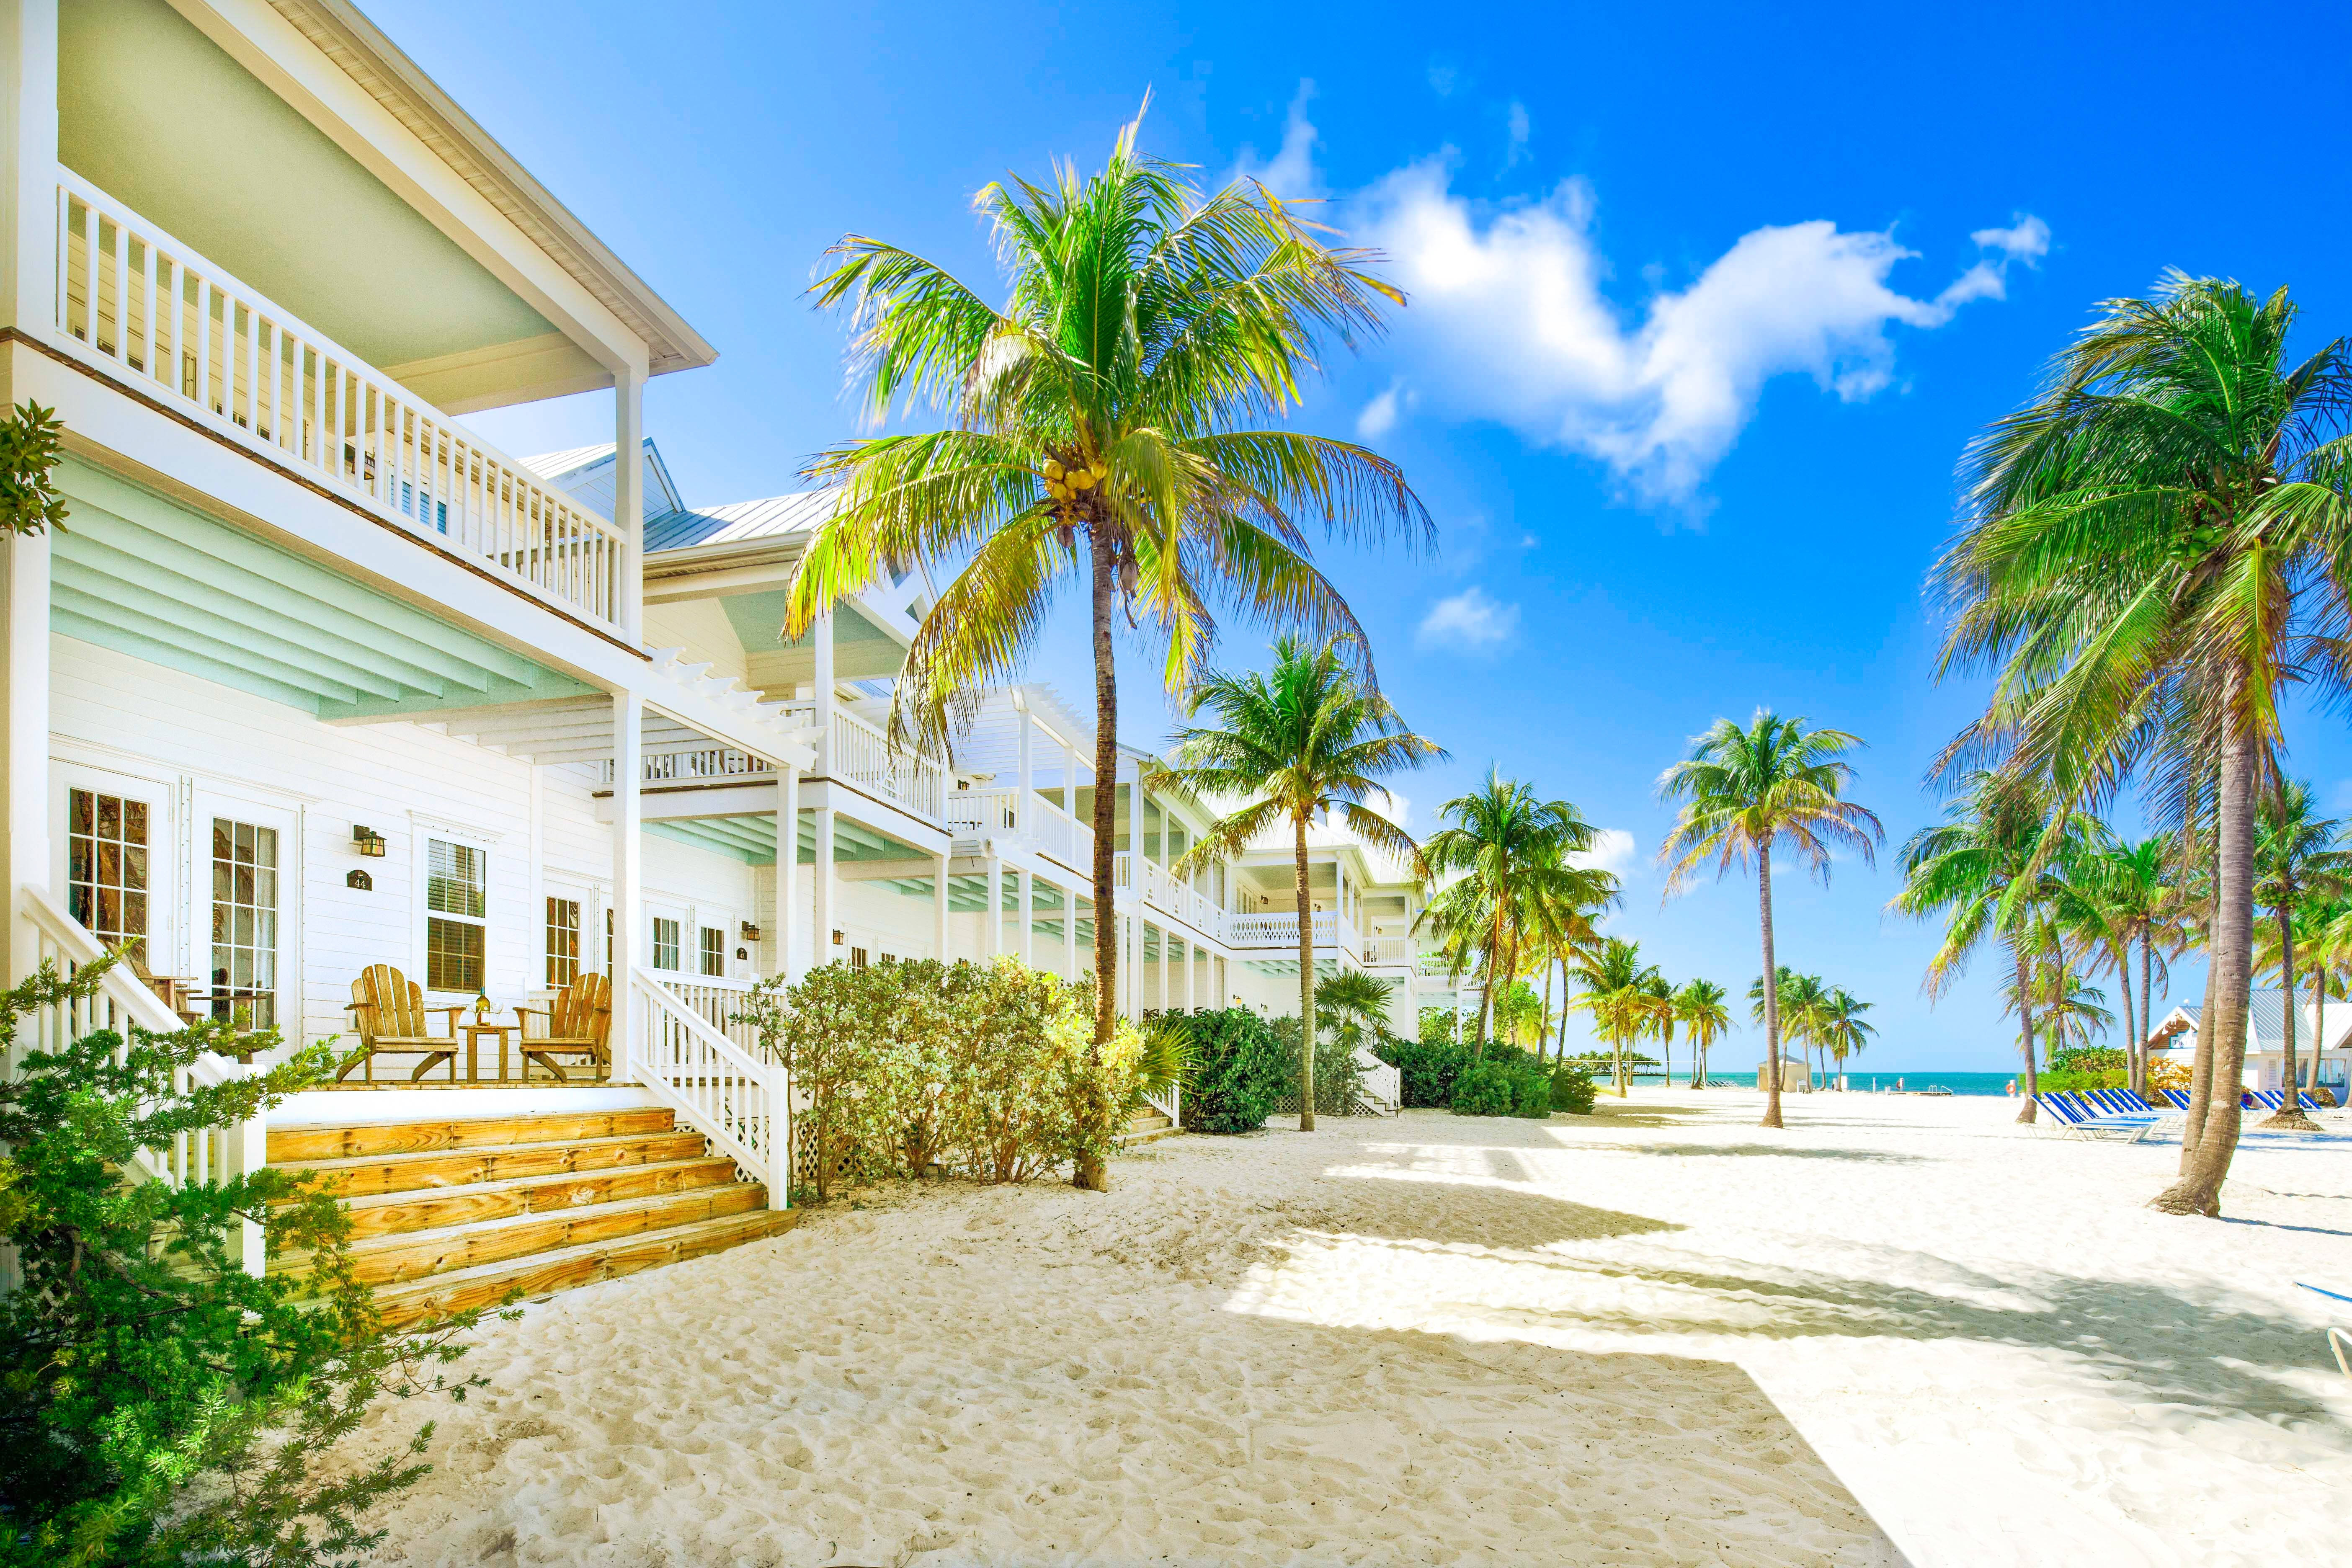 The pristine surroundings of Tranquility Bay Resort, the family-friendly luxury hotel destination in the Florida Keys